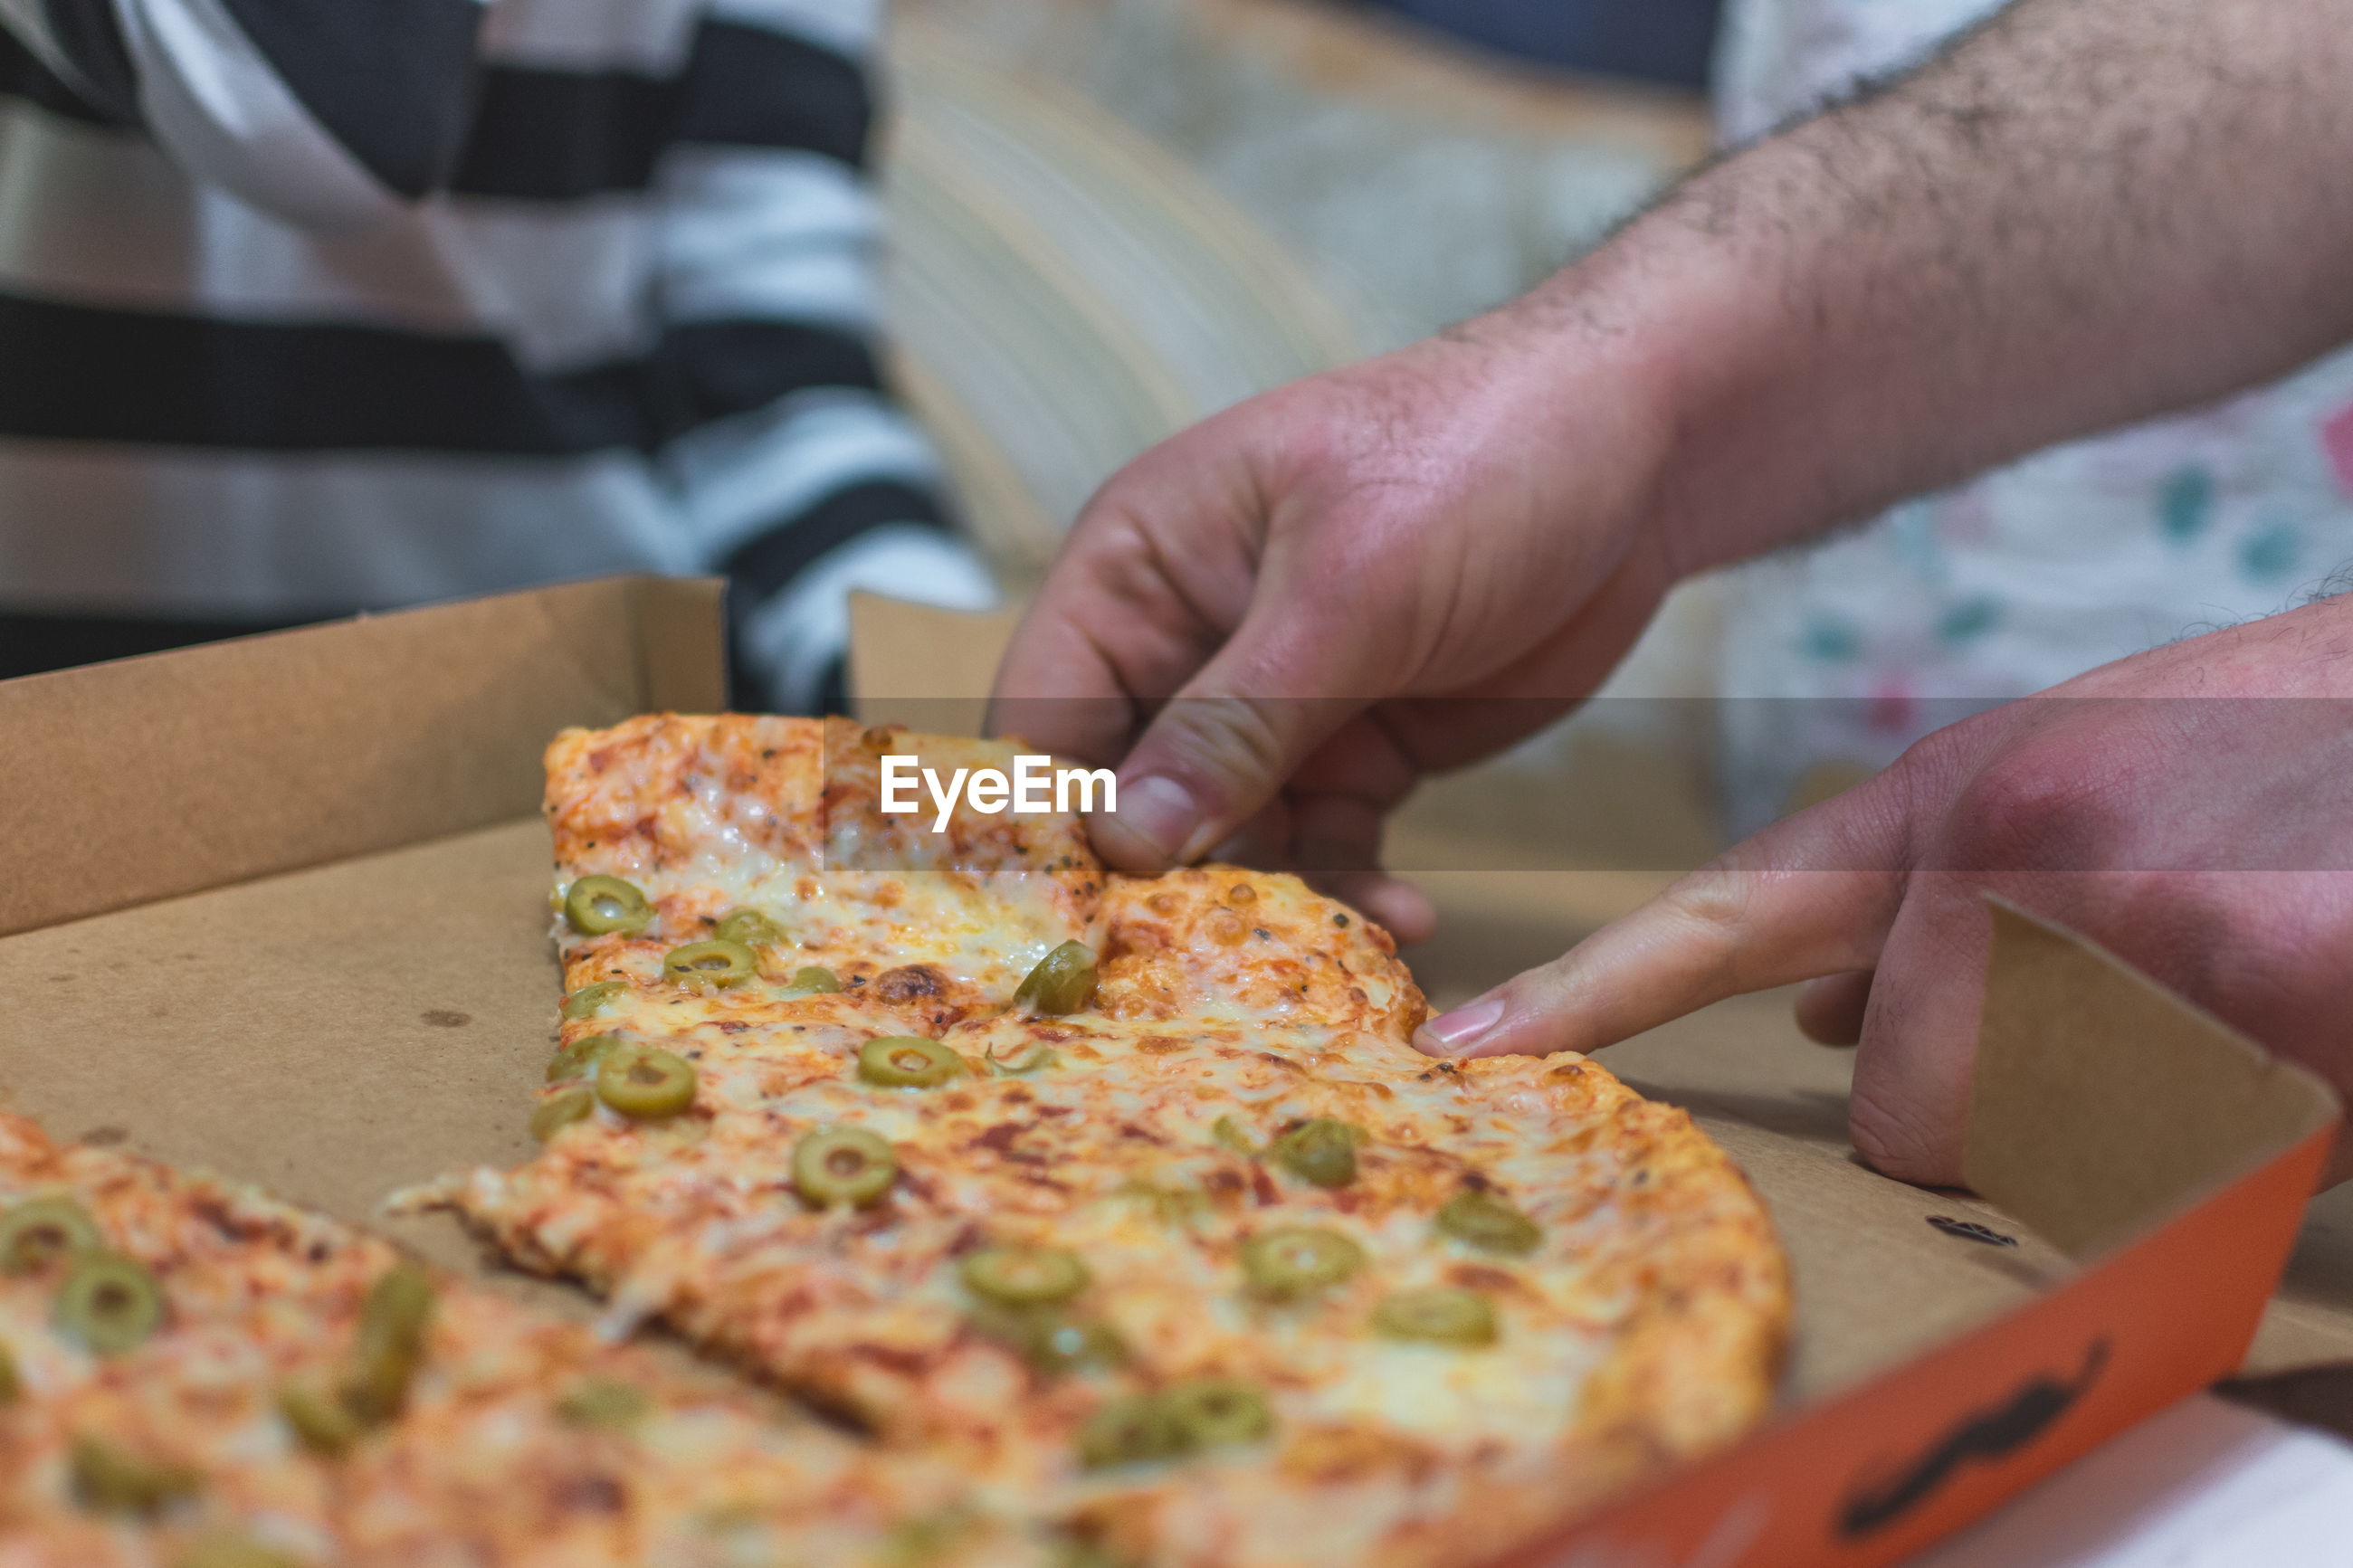 Close-up of hand taking pizza from box